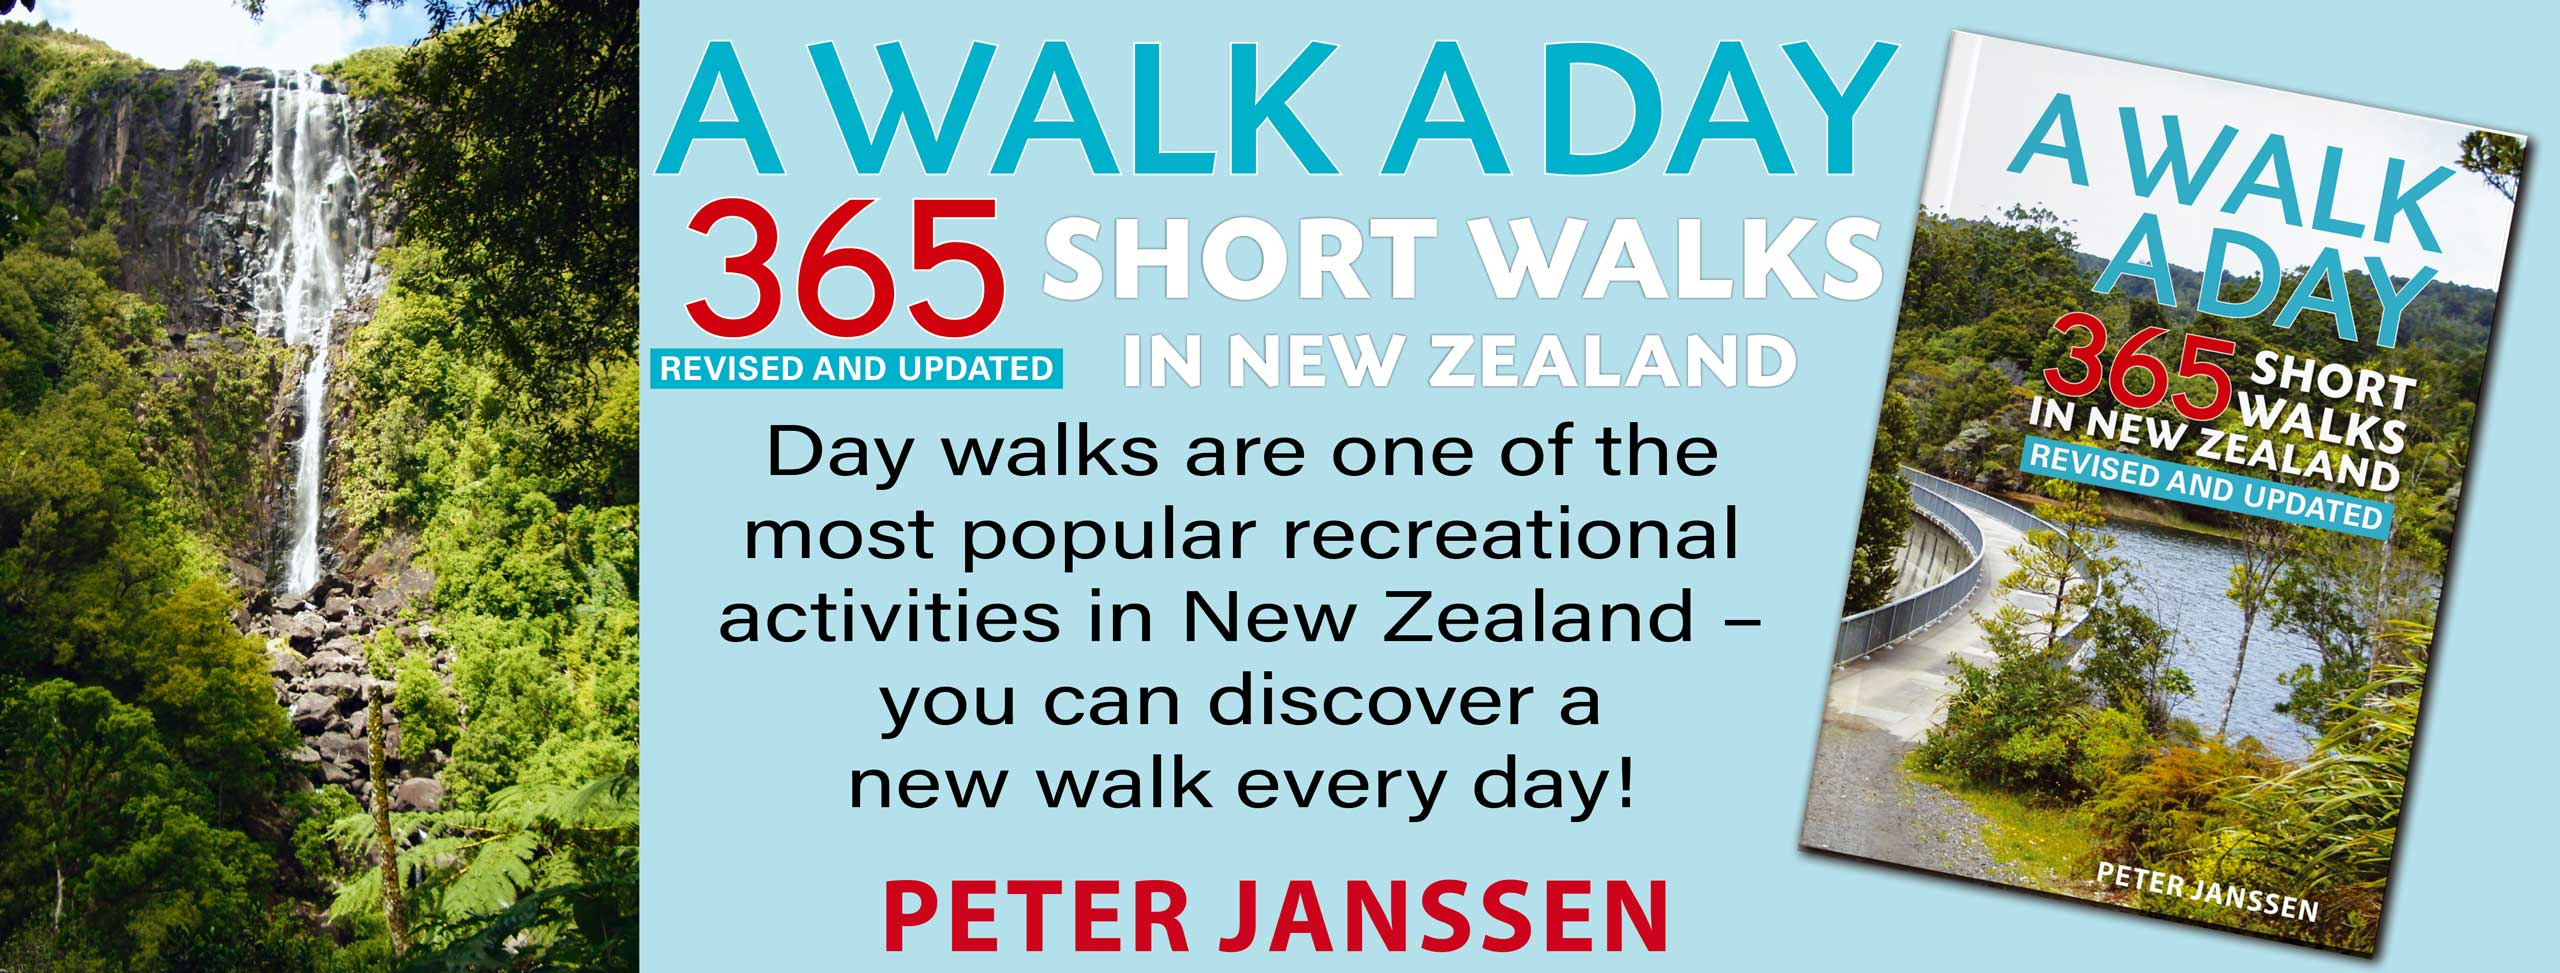 A Walk A Day (Revised and Updated)